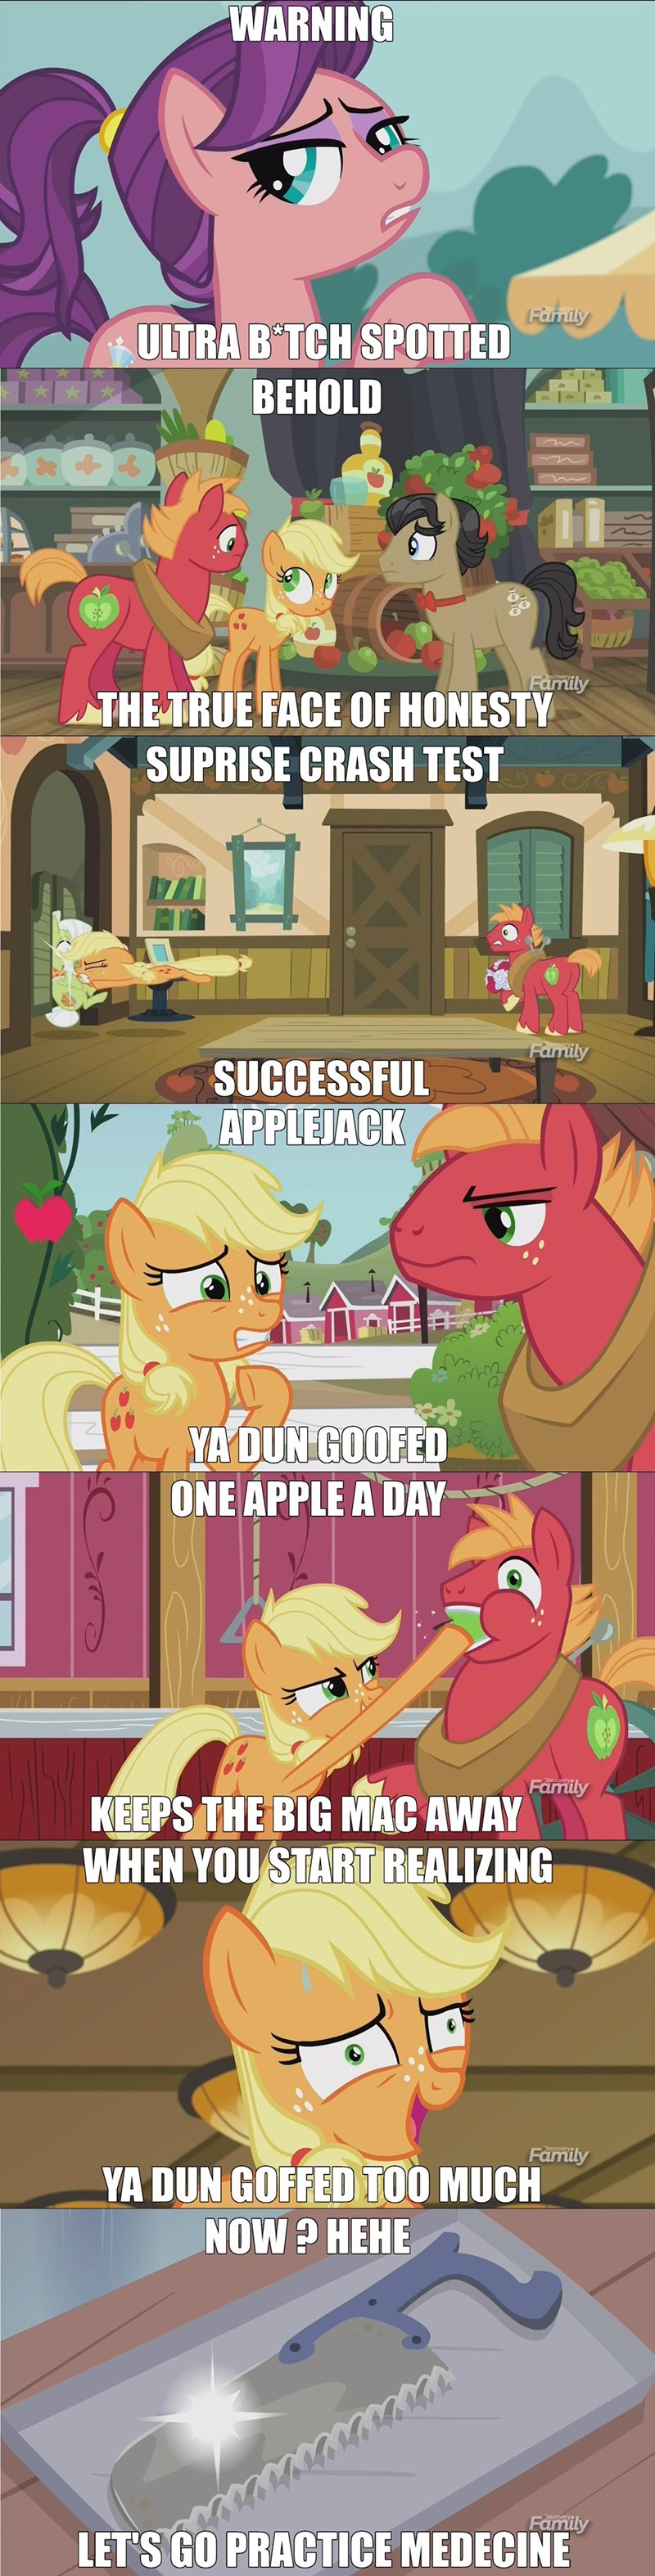 where the apple lies,filthy rich,Memes,Big Macintosh,spoiled rich,granny smith